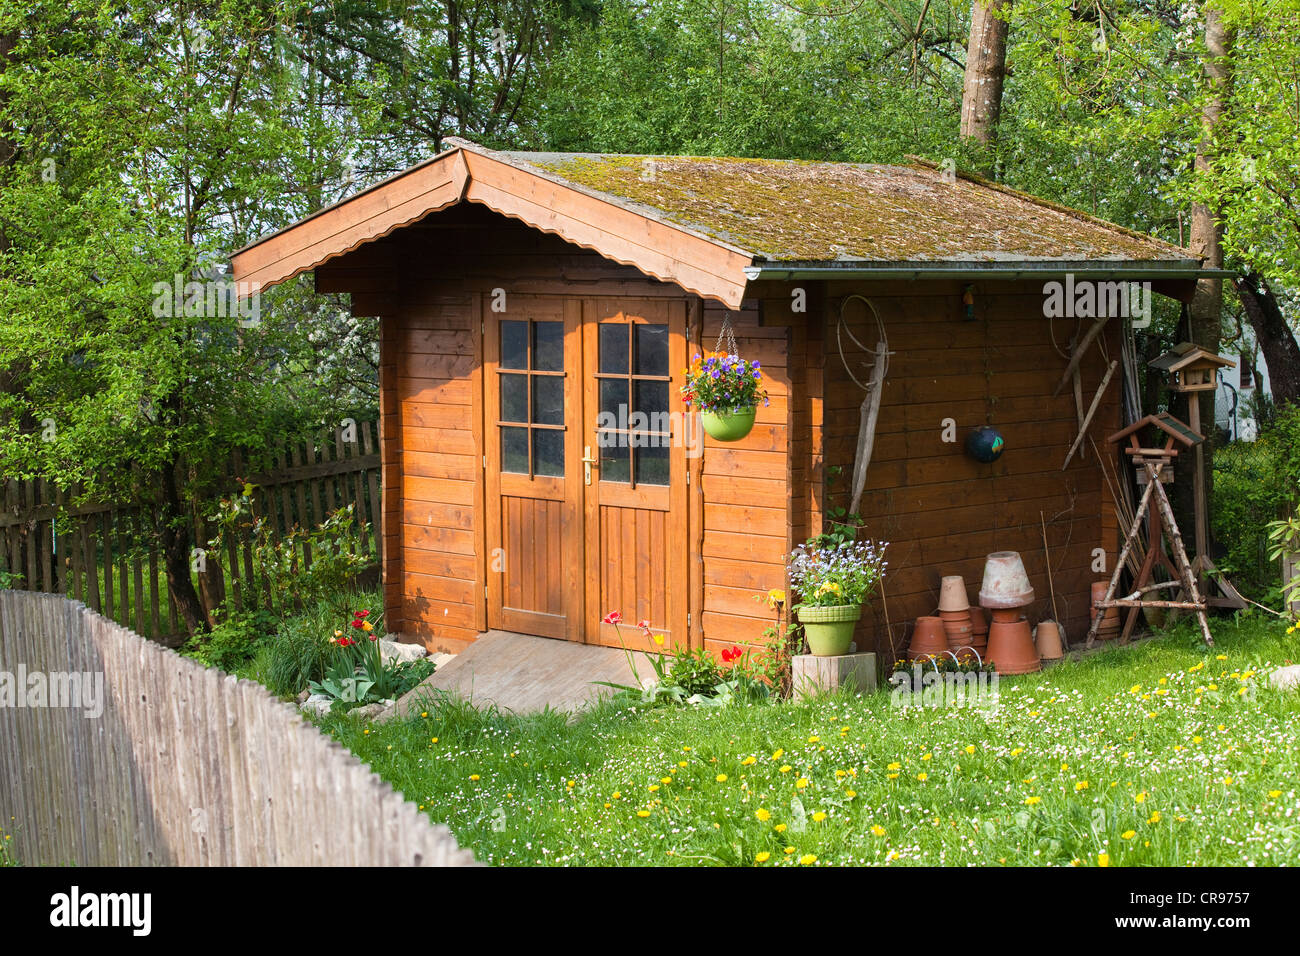 Garden Sheds Wooden wooden garden shed in garden, upper bavaria, germany, europe stock